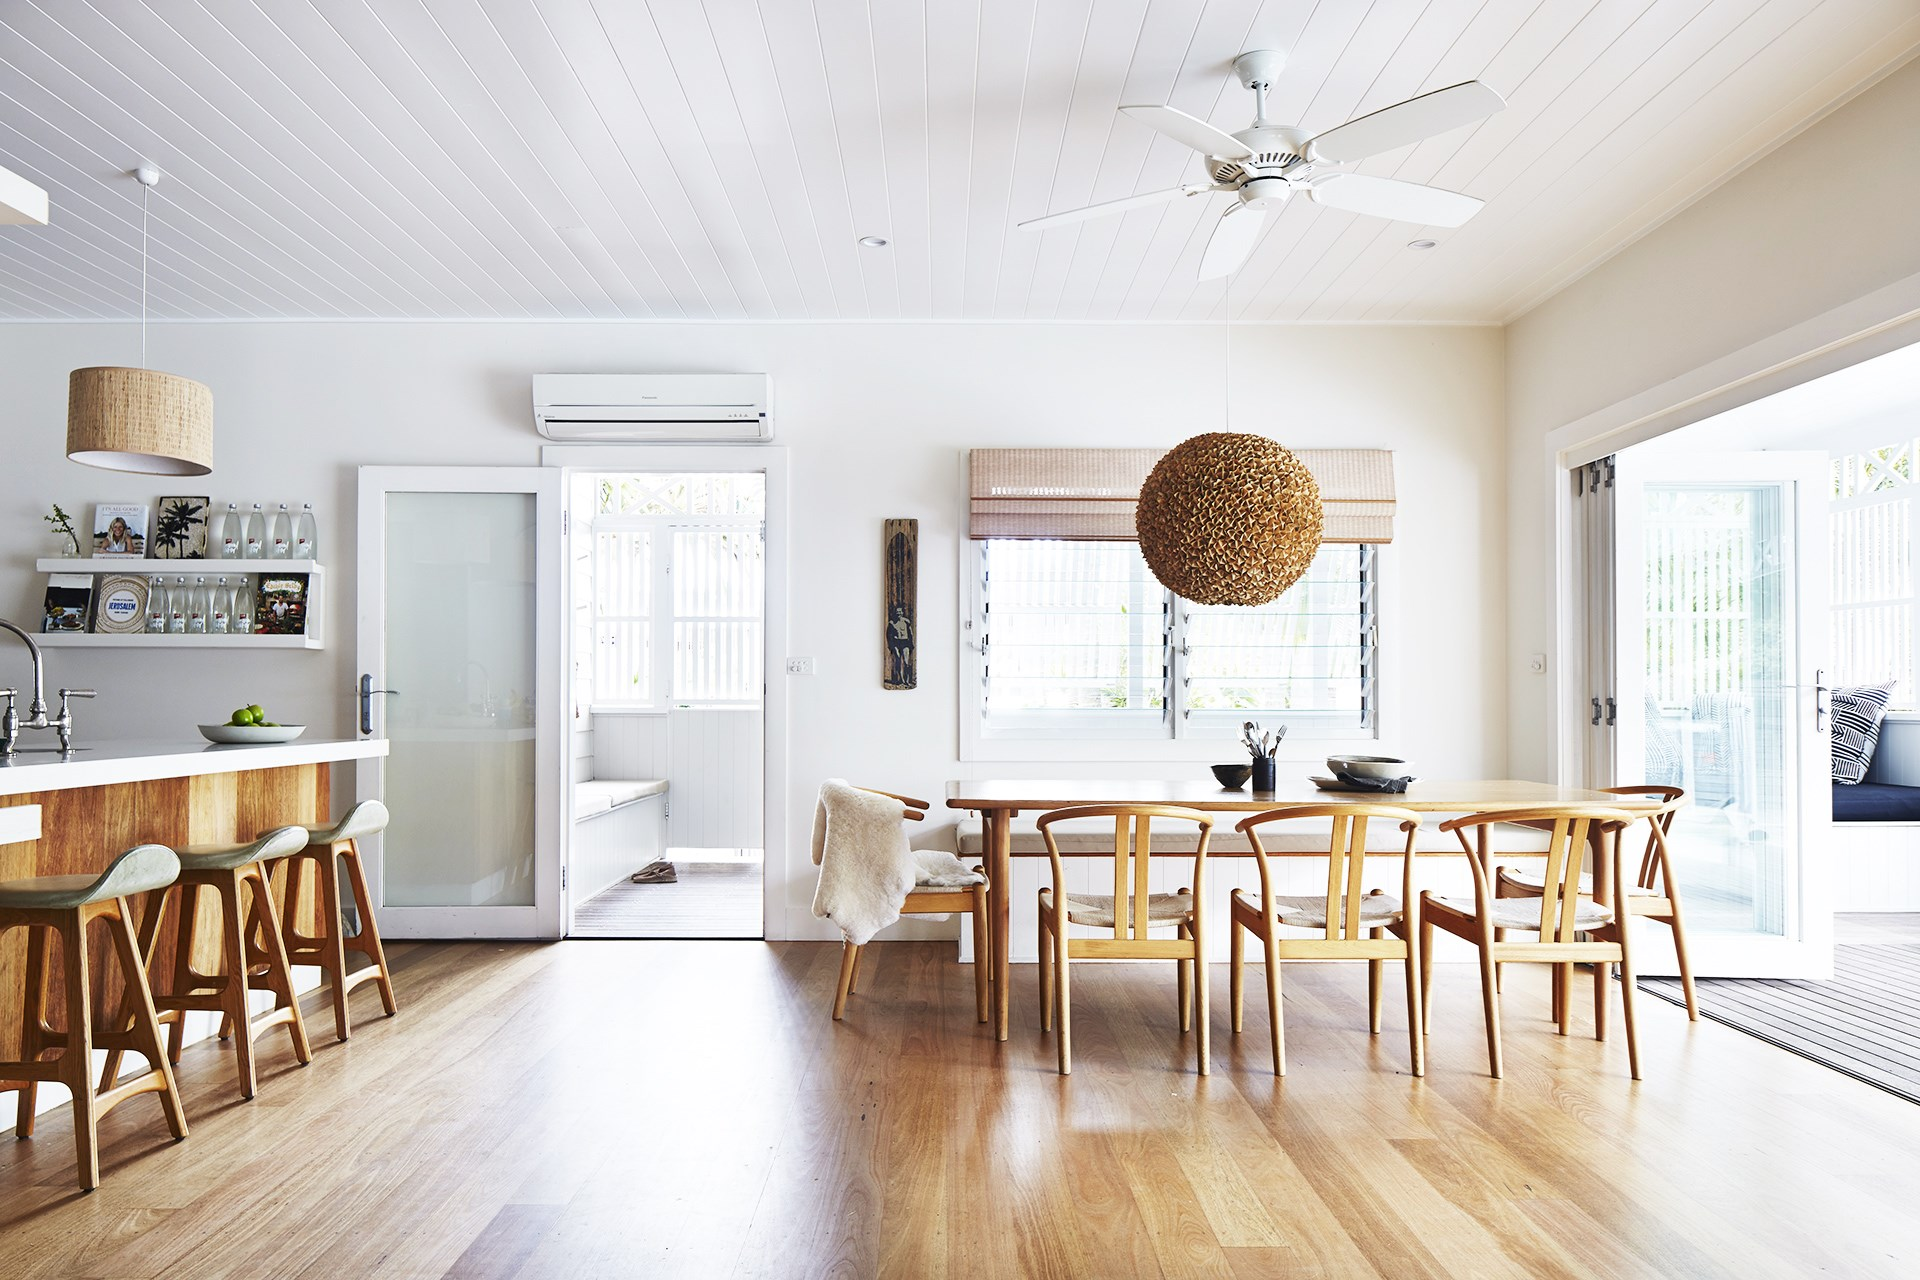 "Make the most of the structure of your home to allow for maximum airflow and plenty of natural light. Bi-folding glass doors, like those in this open-plan [Byron Bay beach house](http://www.homestolove.com.au/gallery-kimberly-and-stephens-byron-bay-beach-house-1660|target=""_blank""), allow you bring the outdoors in, promoting relaxed living and natural flow. *Photo: Alicia Taylor*"